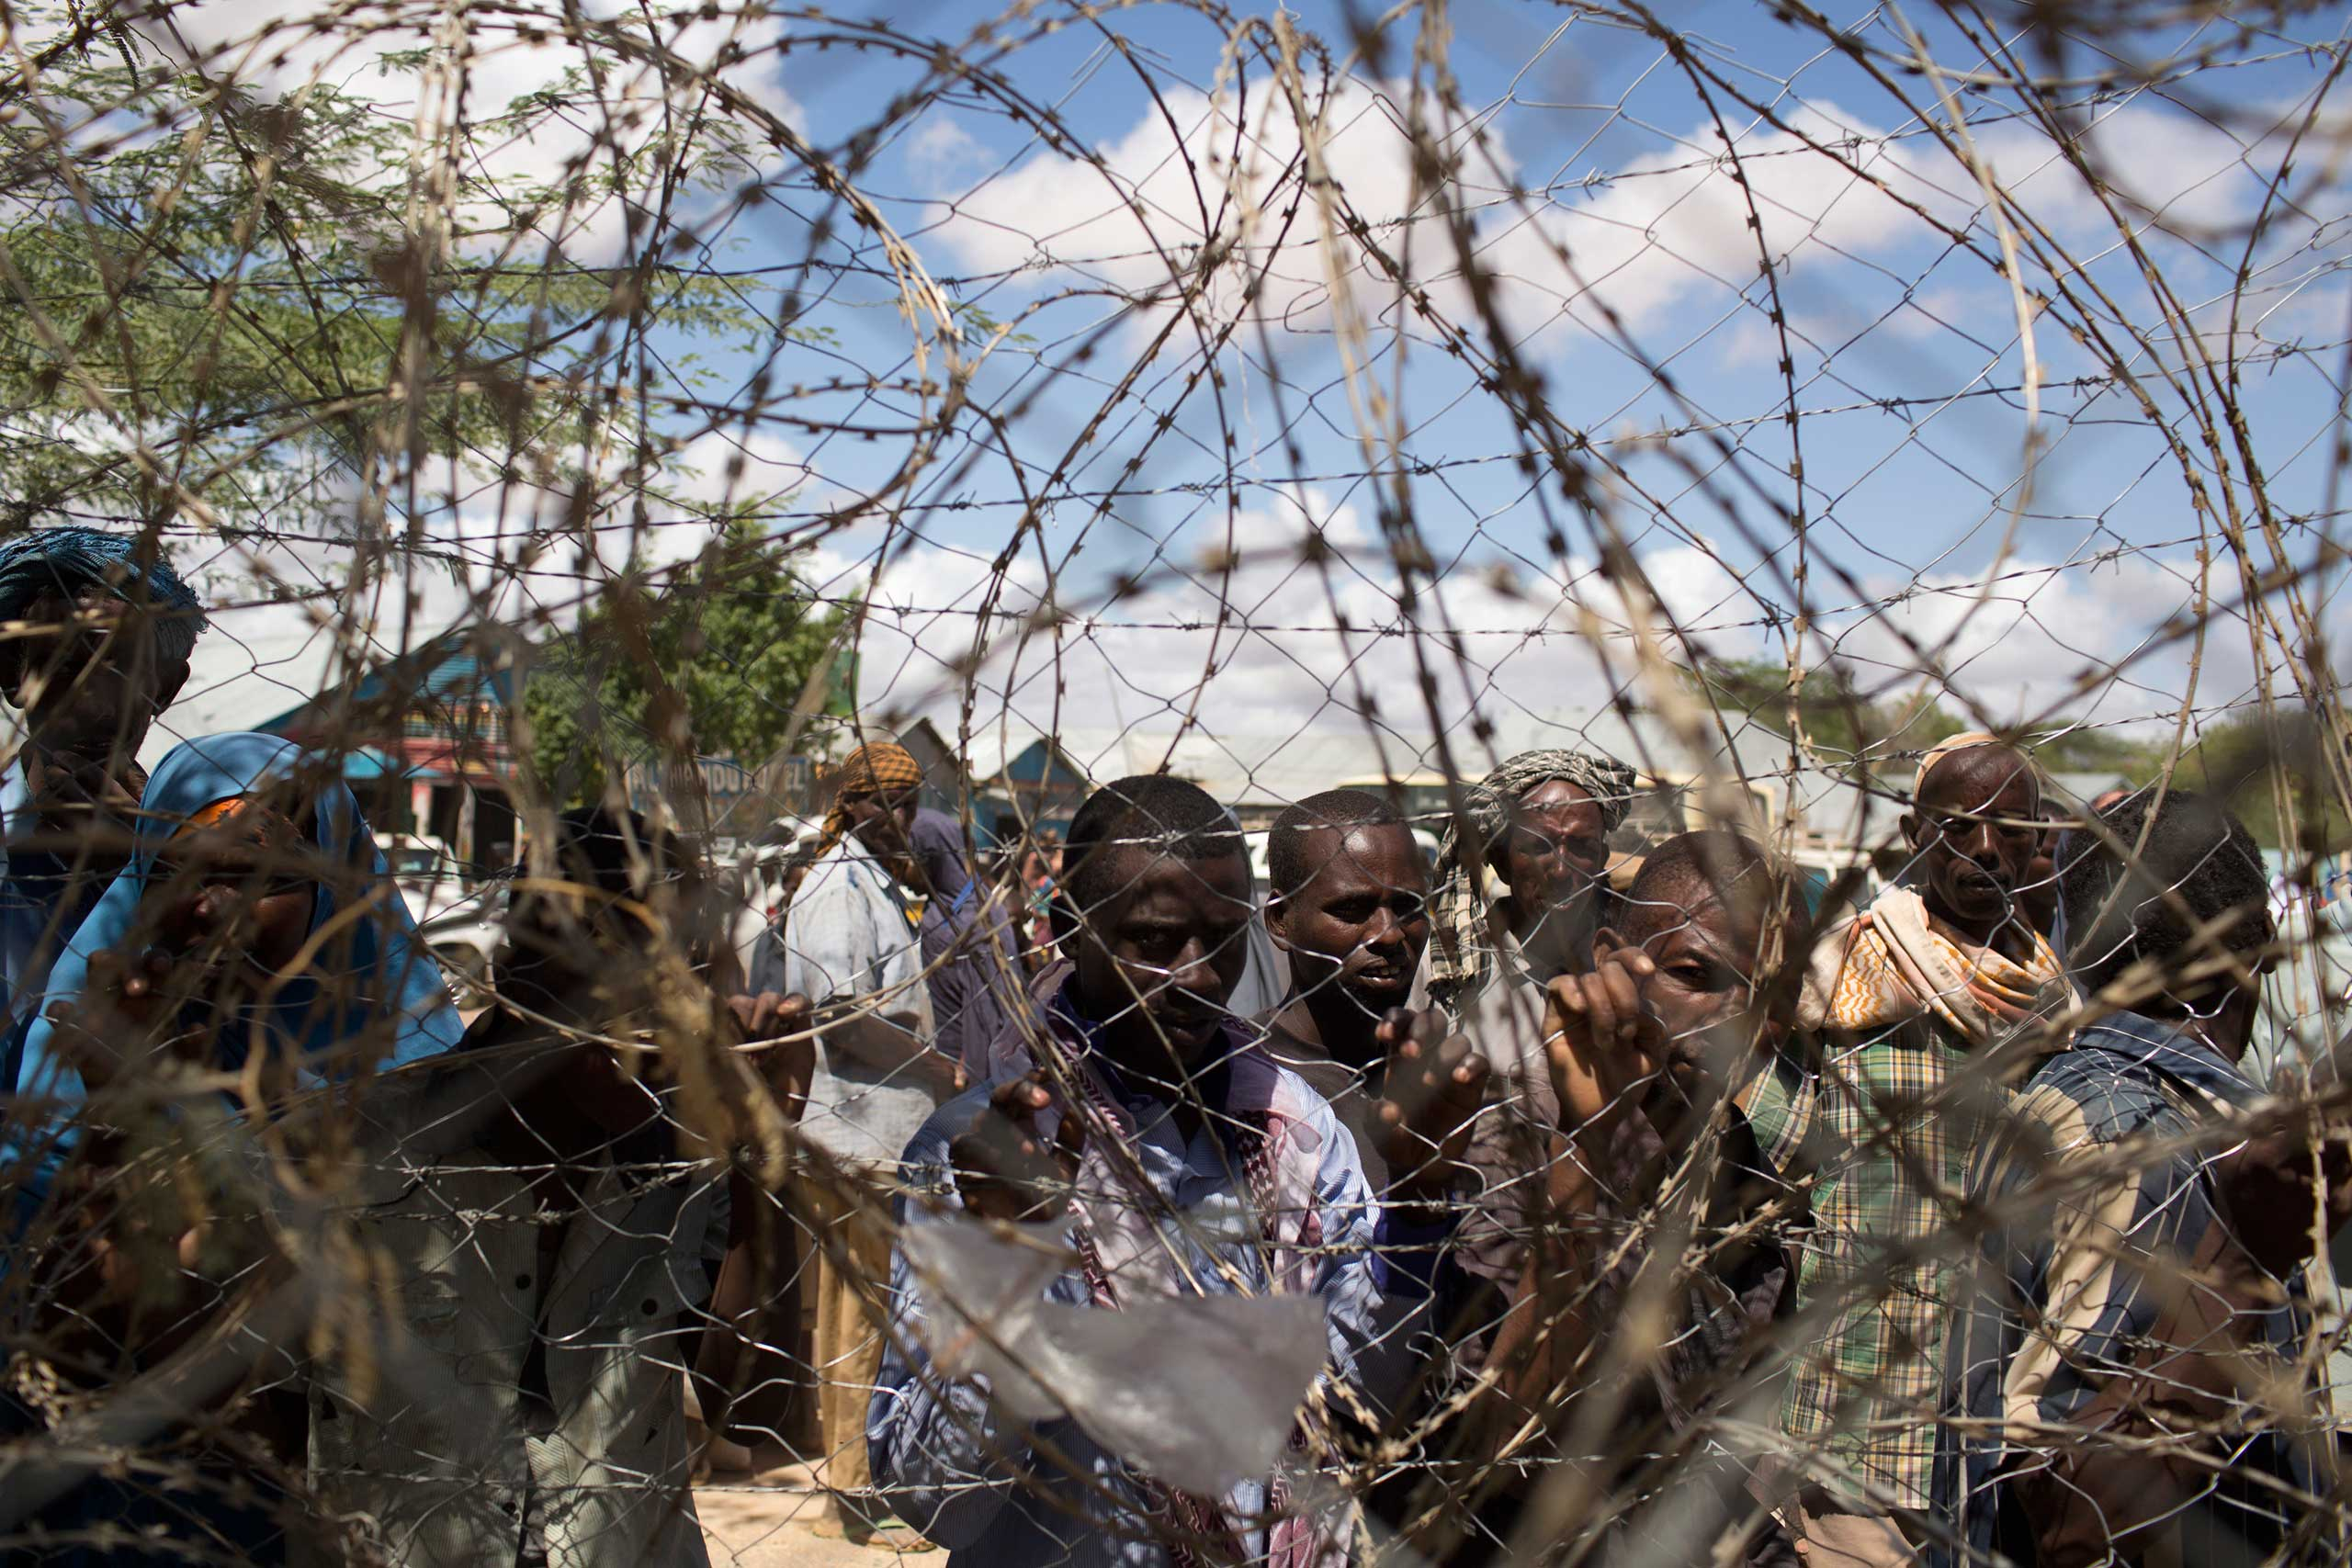 Somali refugees look through a barbwire fence in Dagahale, one of the several refugee settlements in Dadaab, Garissa County, northeastern Kenya in 2013.